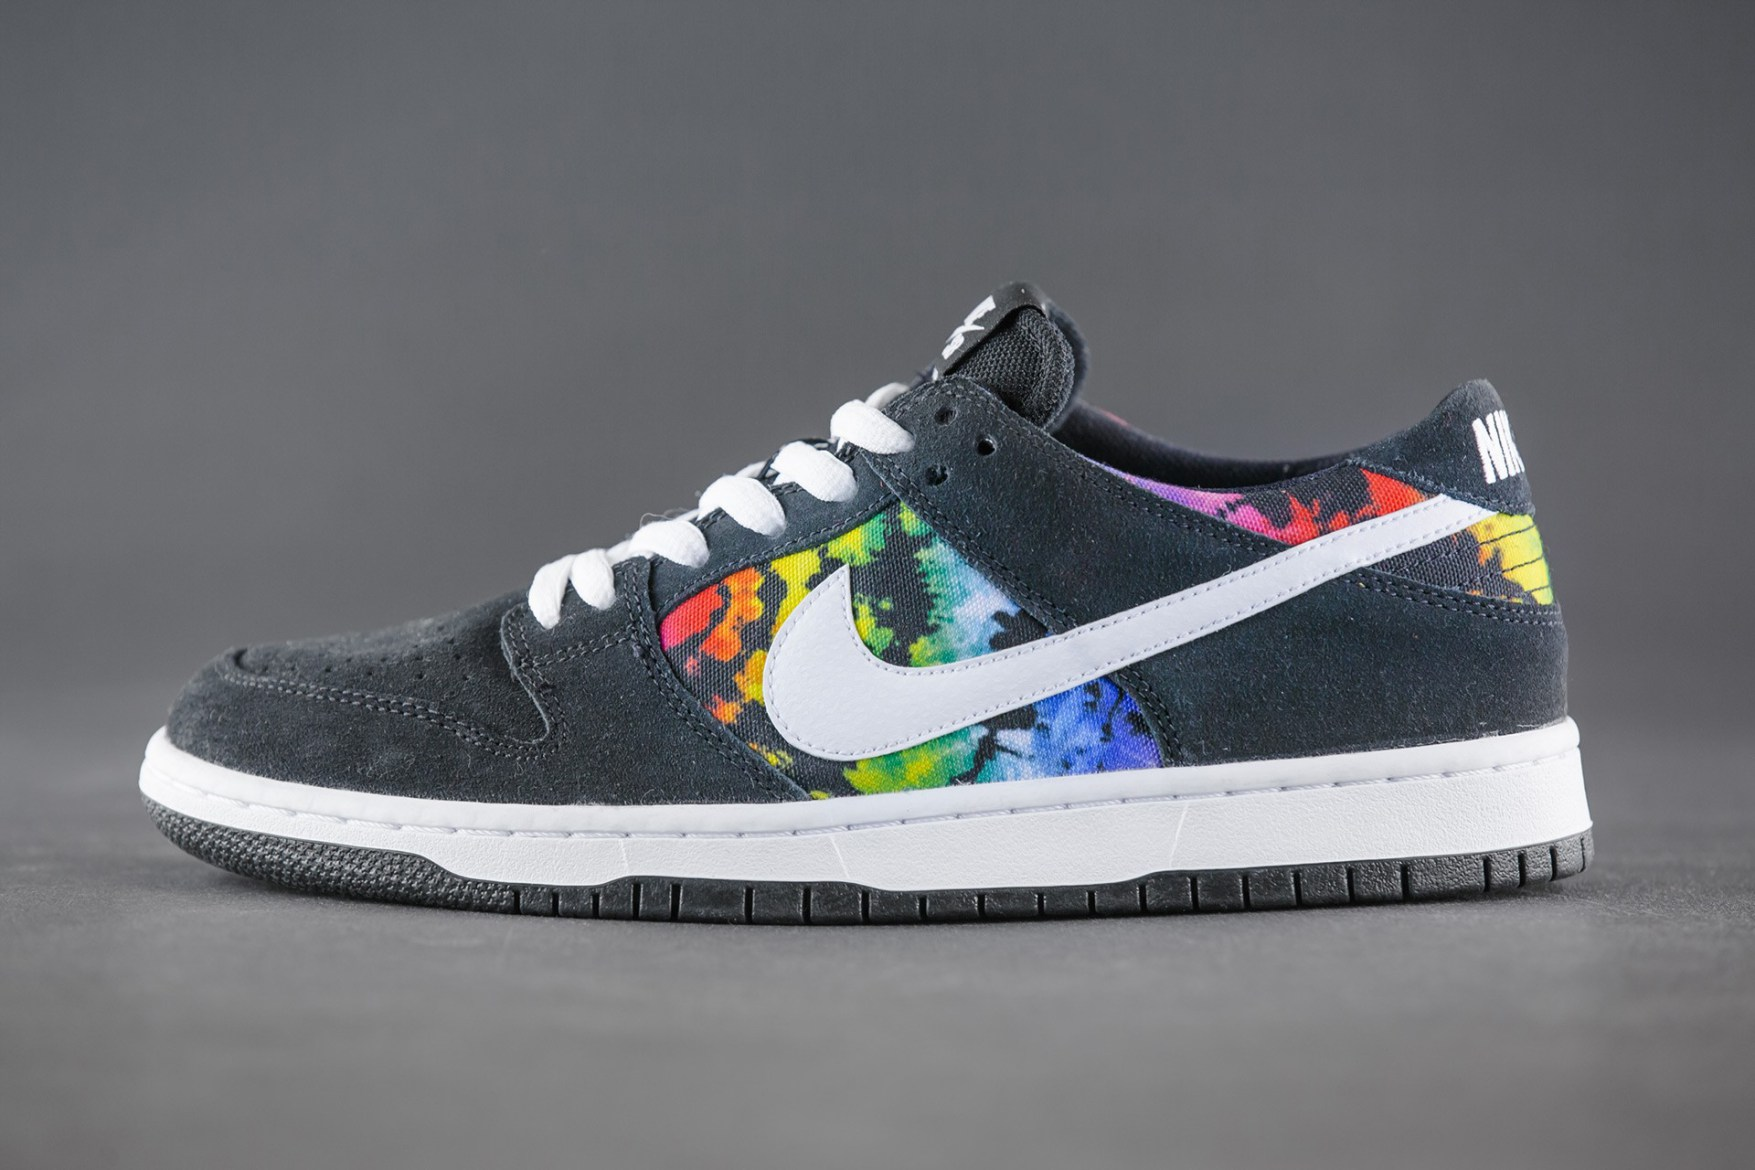 ba8ea5f9fc854 nike-sb-dunk-low-pro-ishod-wair-1thedropnycNike SB Dunk Low Pro